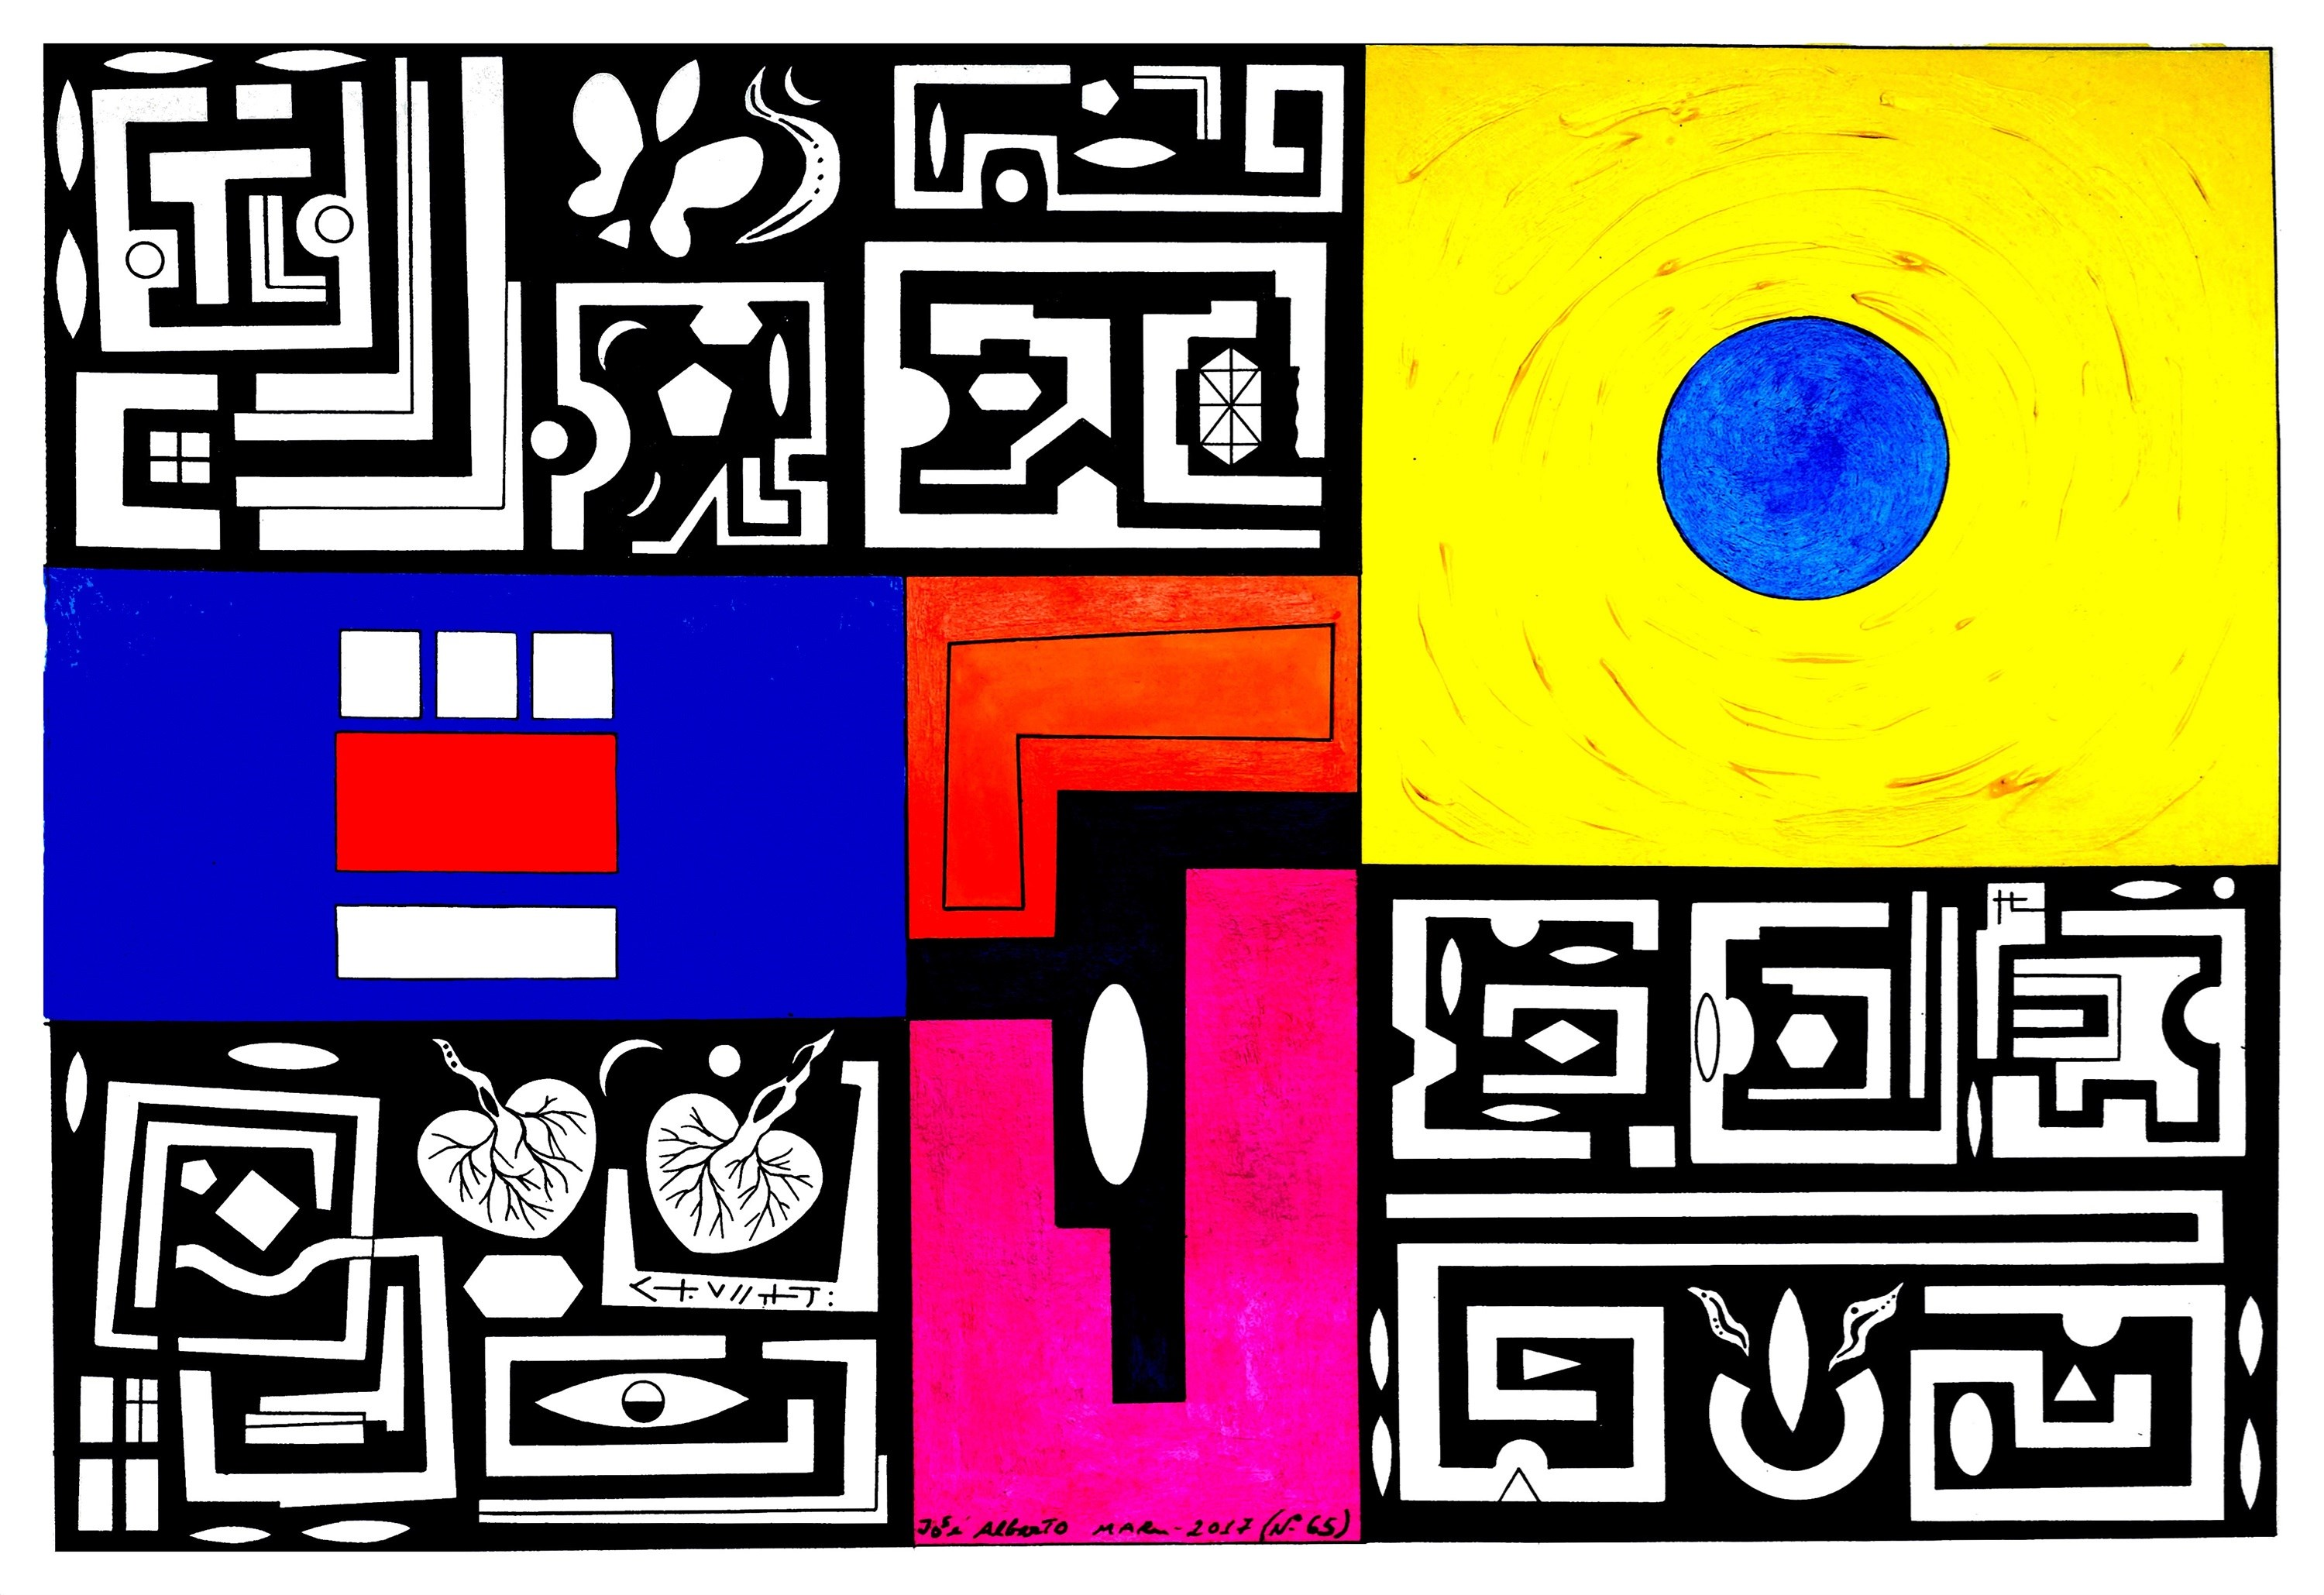 Série: pequenas sabedorias. series: small wisdoms (Nº65), original Geometric Acrylic Painting by José Alberto Mar